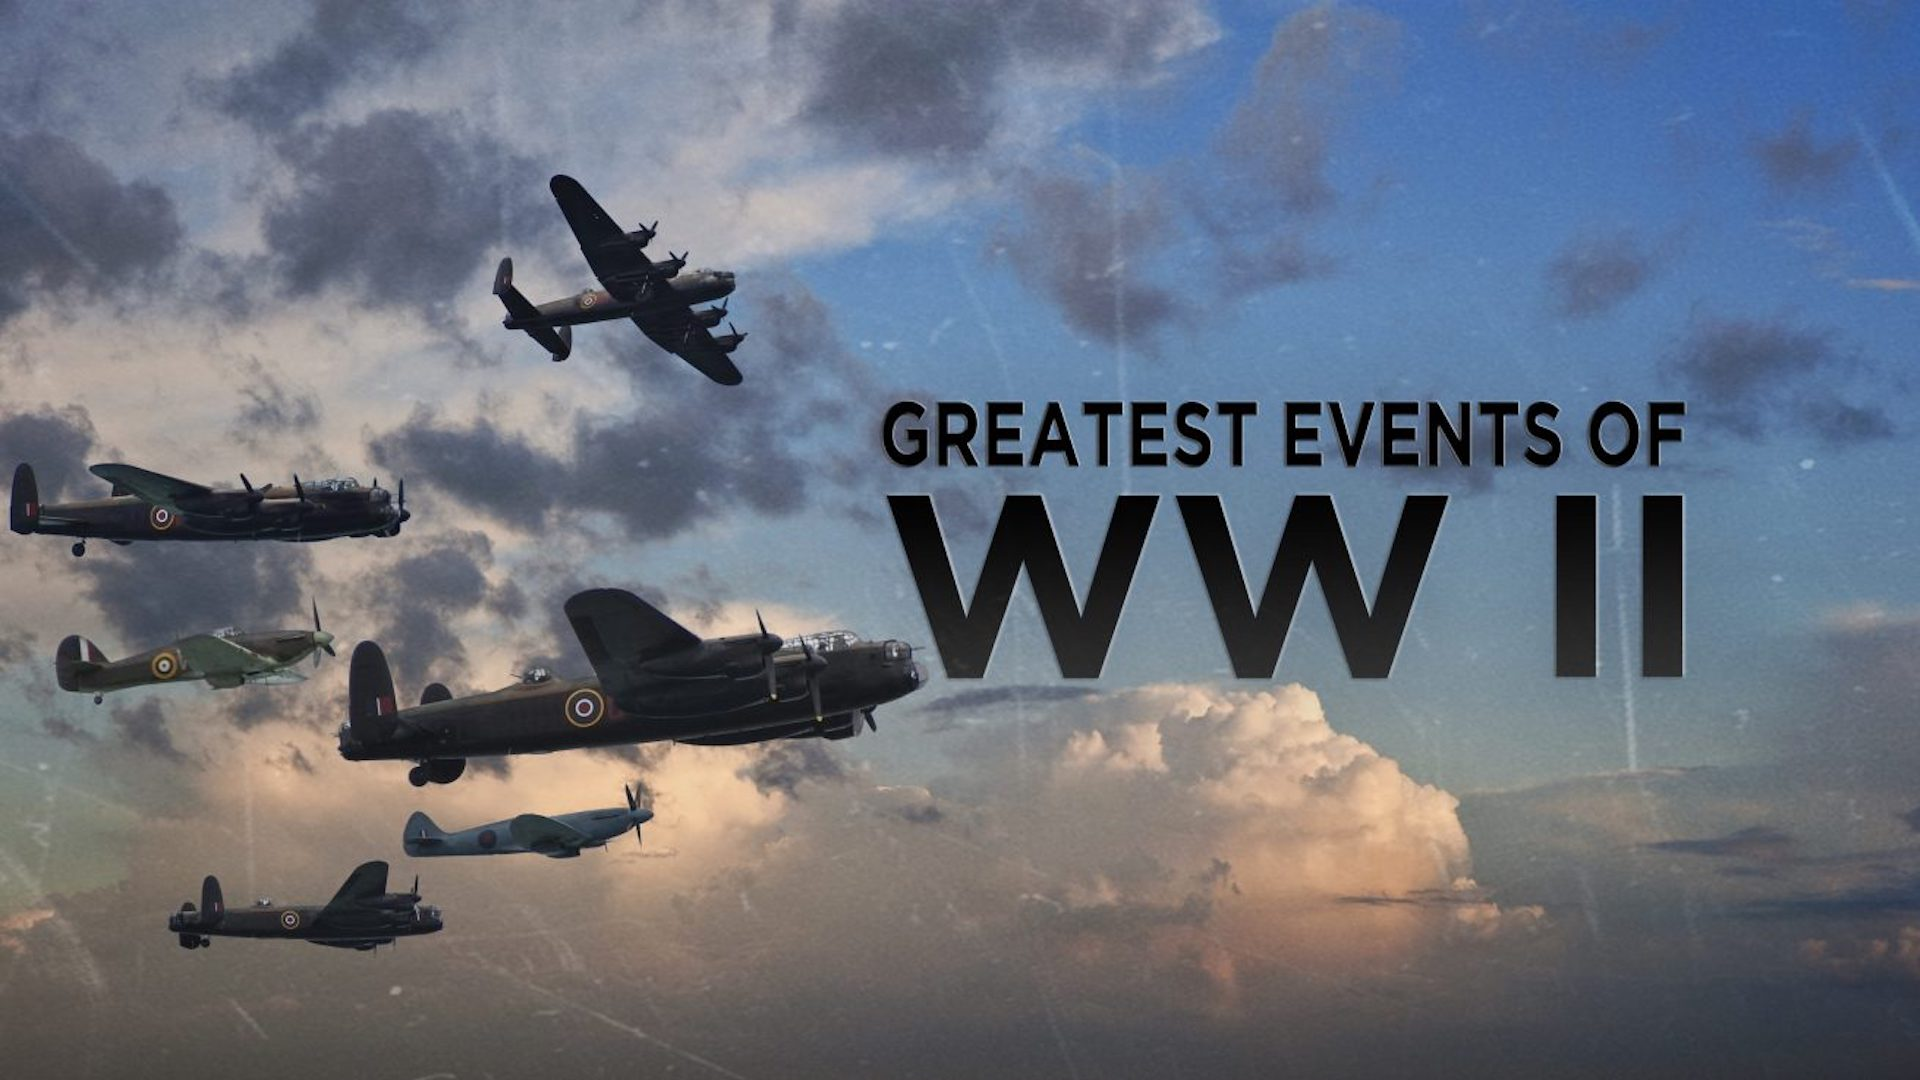 greatest events of world war ii in hd colour s01e06 720p web x264-stout